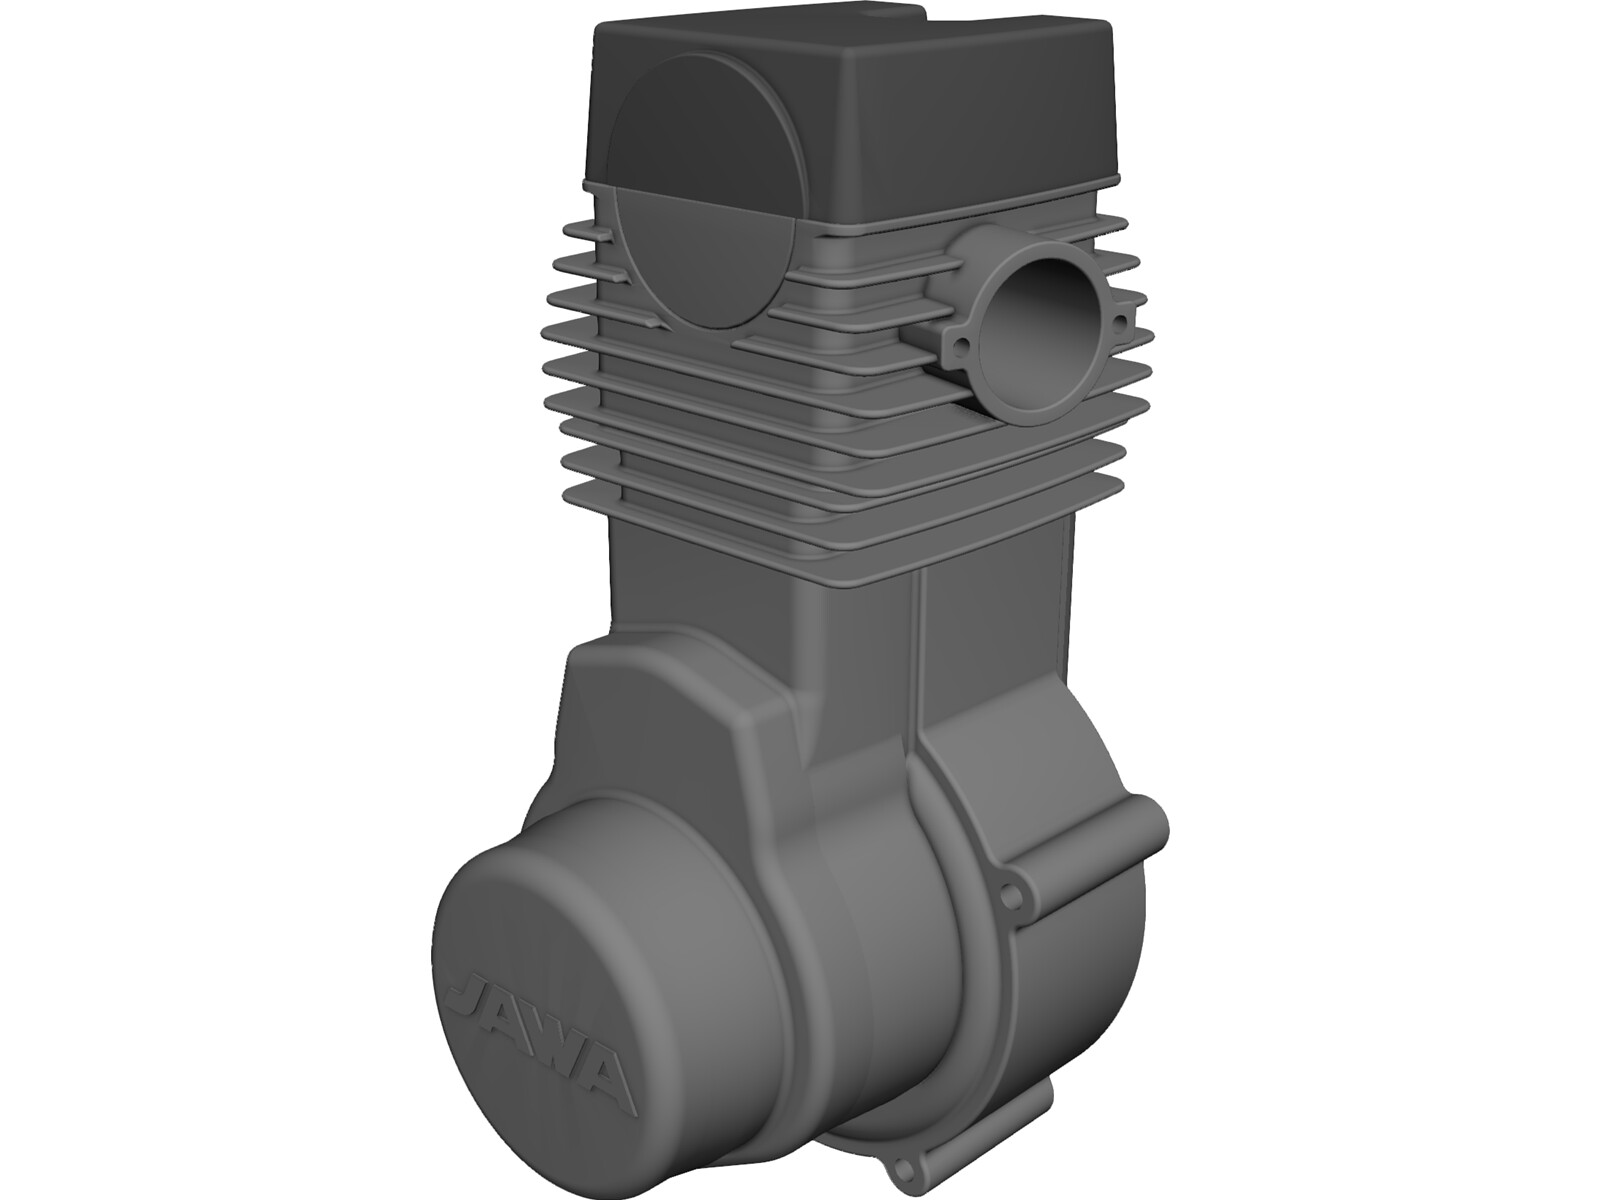 Jawa 500CC Engine 3D CAD Model